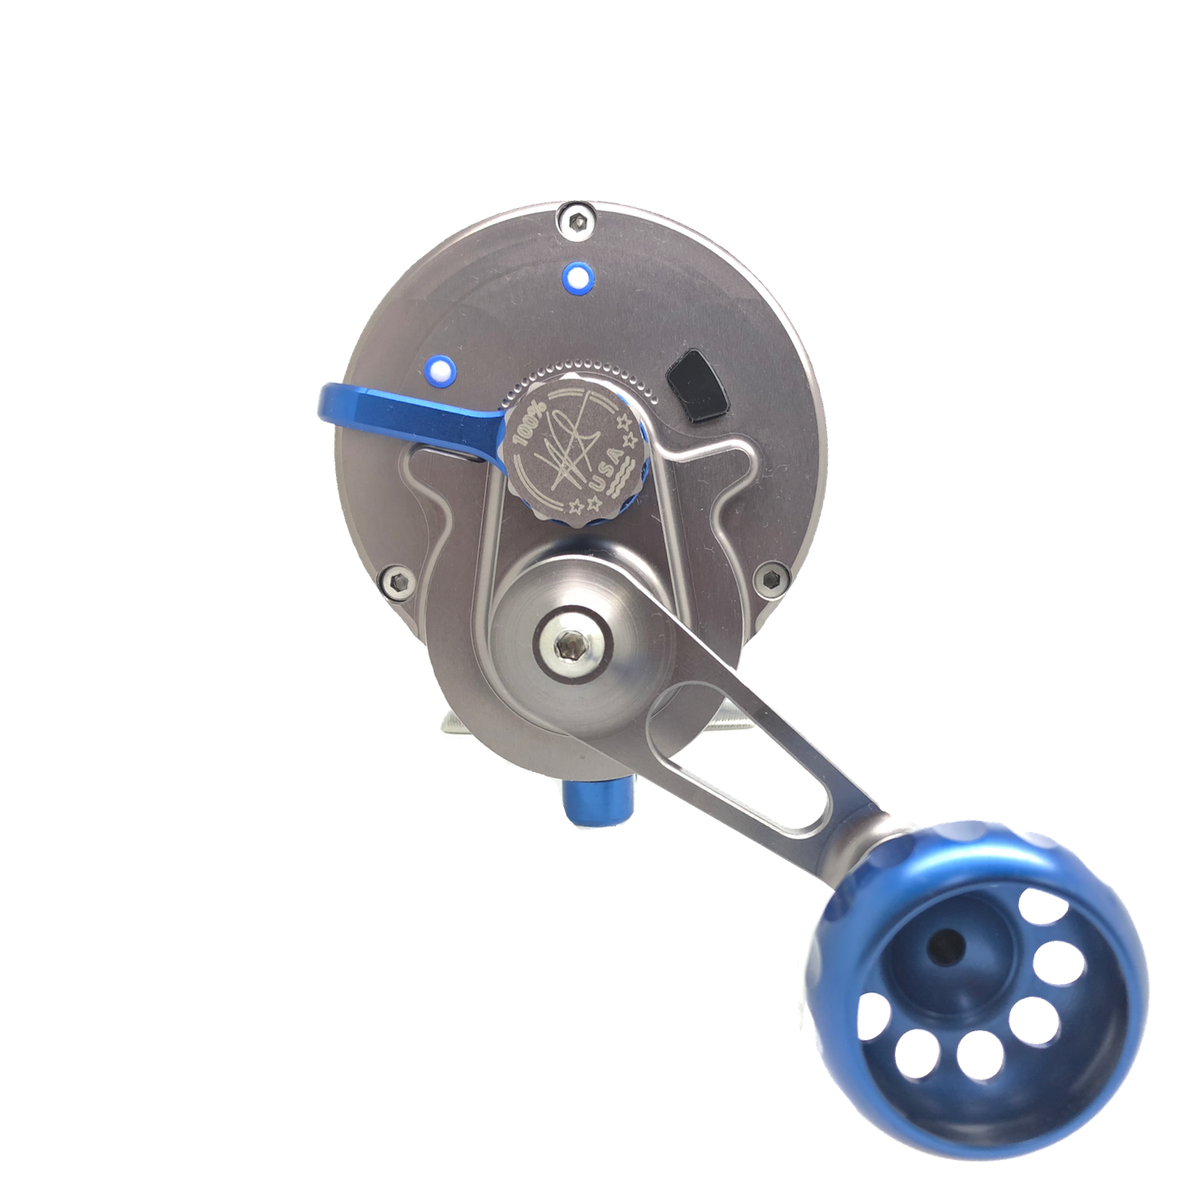 SEiGLER OS Conventional lever drag fishing reel in Blue accents and Gunmetal anodized finish, American made made in Virginia Lifetime warranty